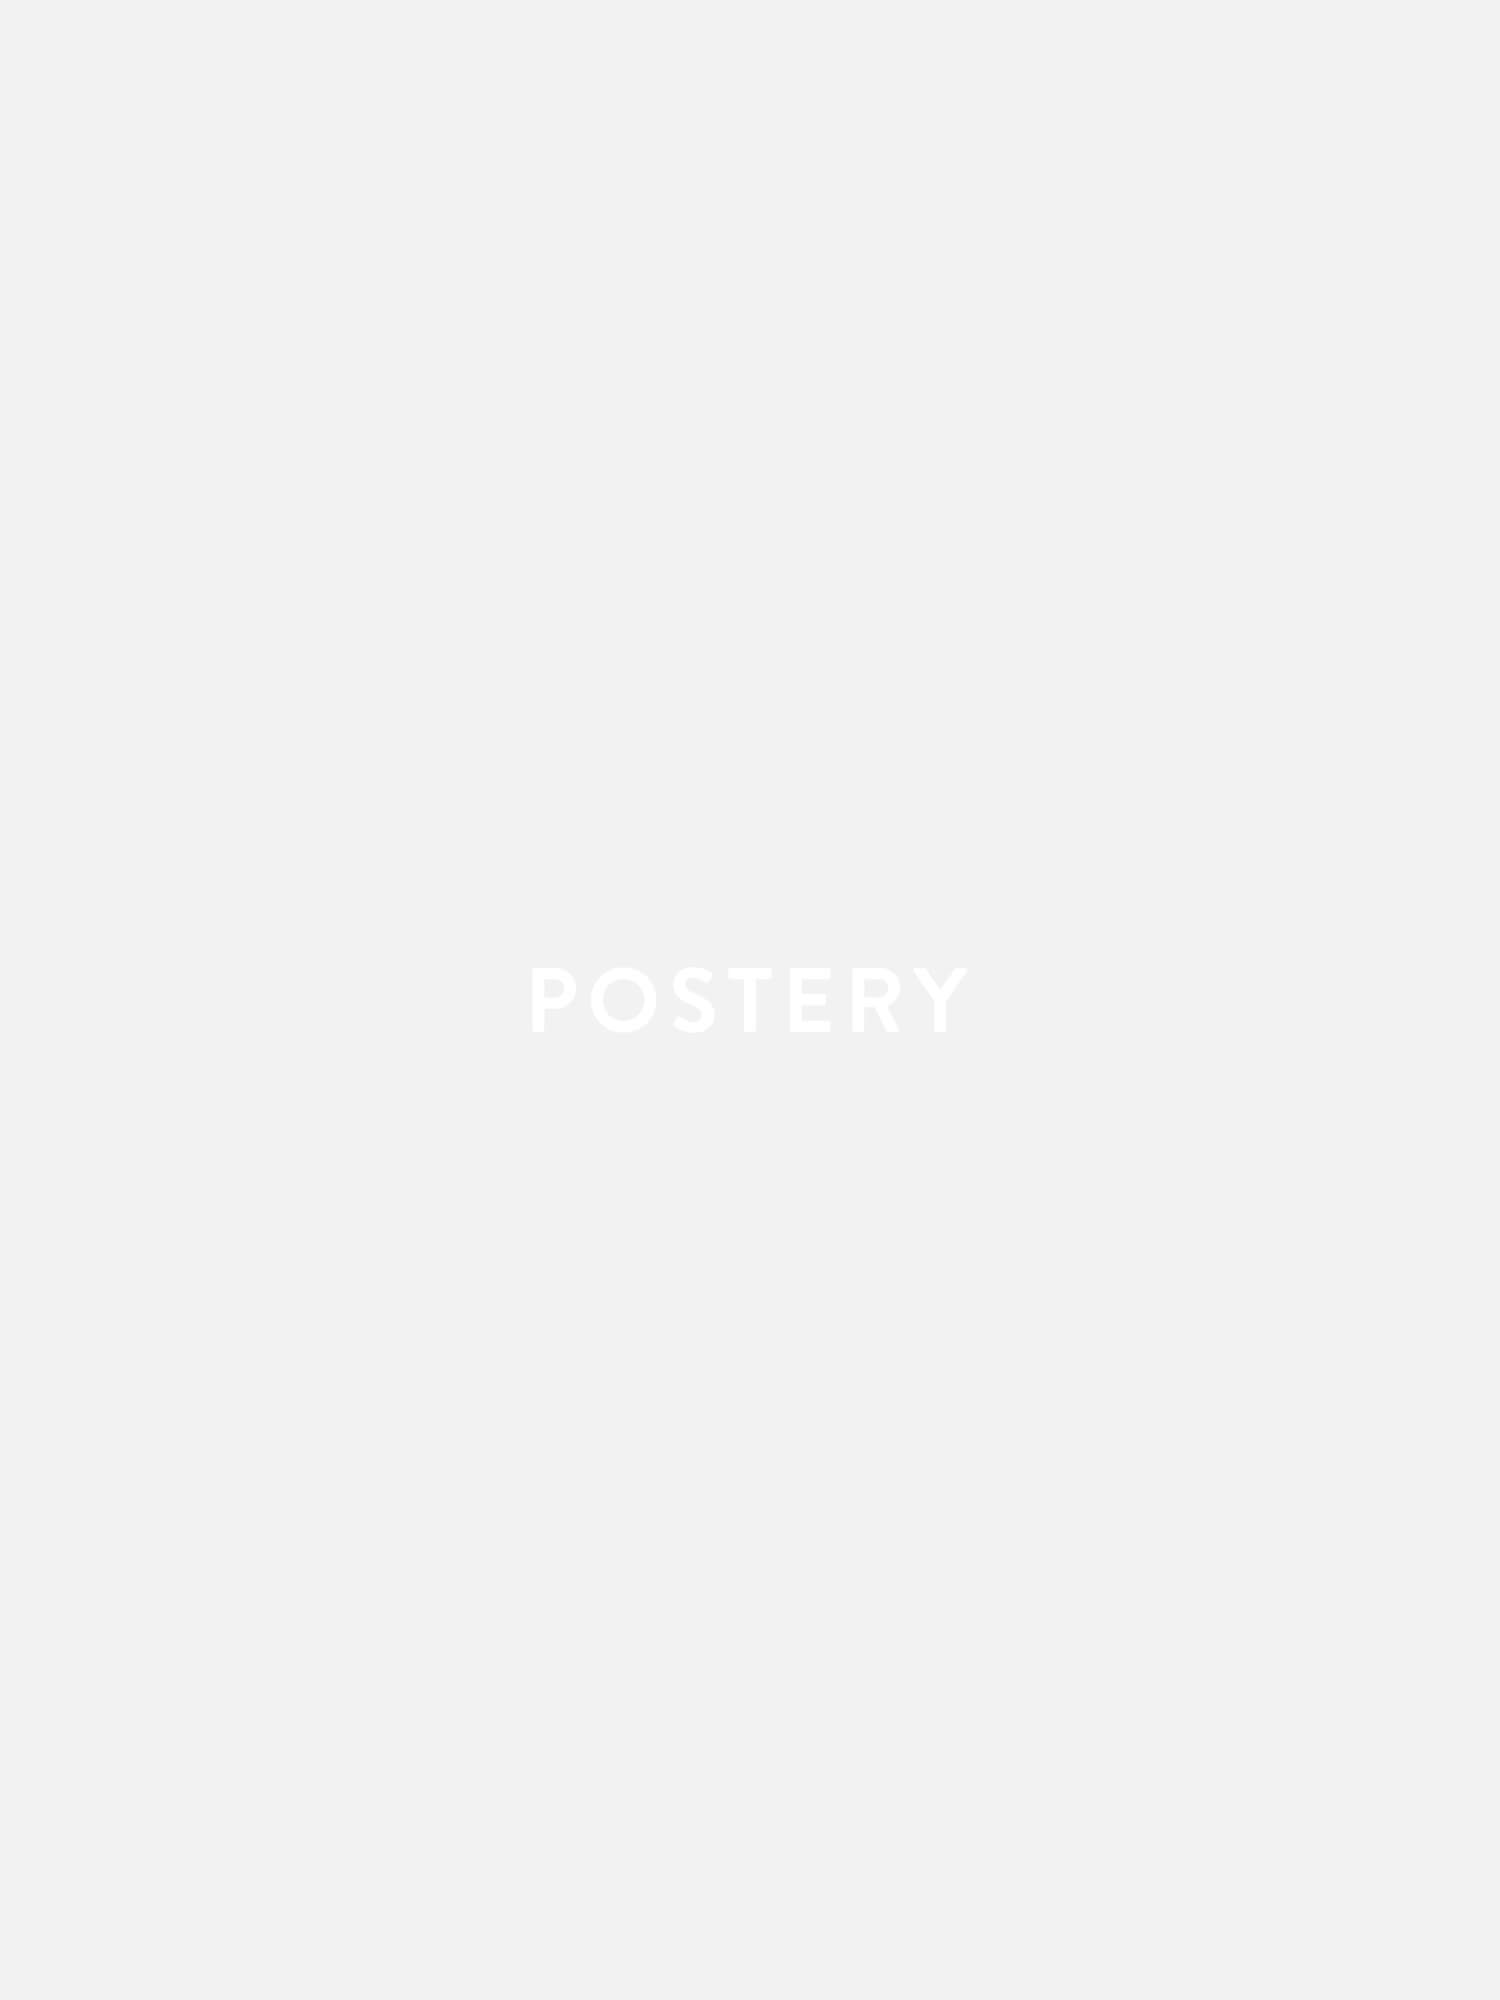 Elephant & Duck Poster